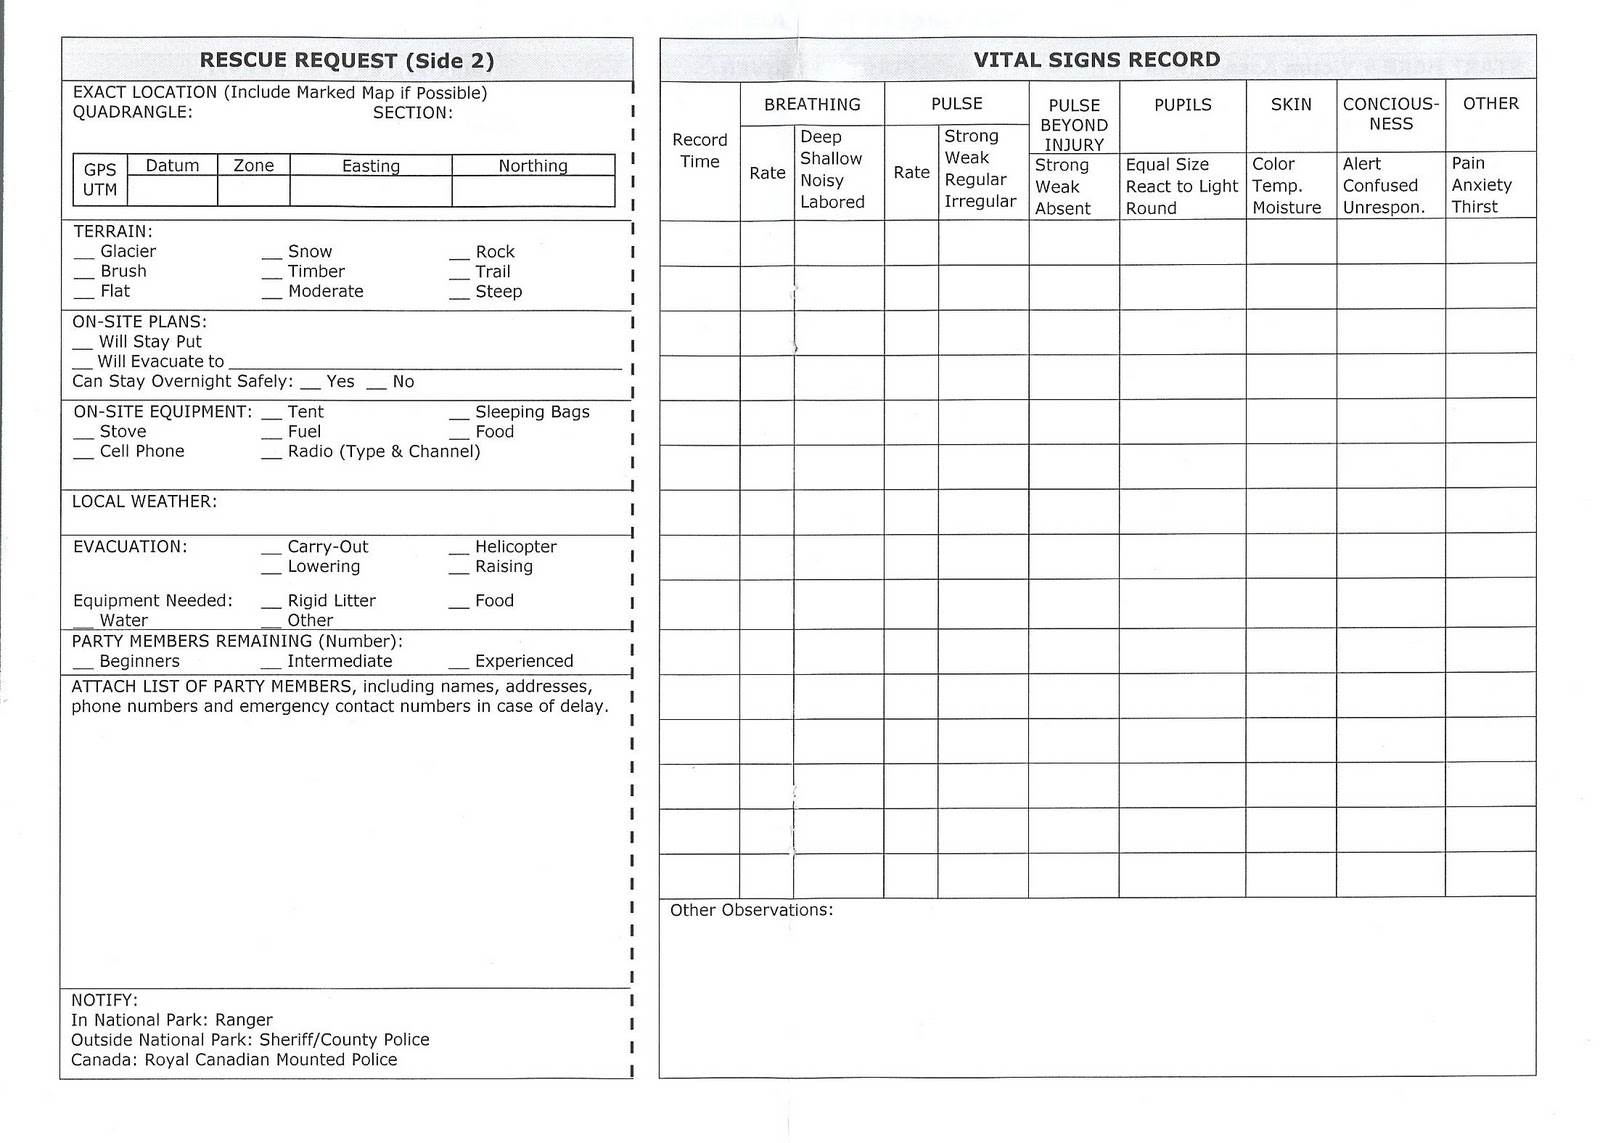 belaying and bandaging first aid forms amp cheat sheets